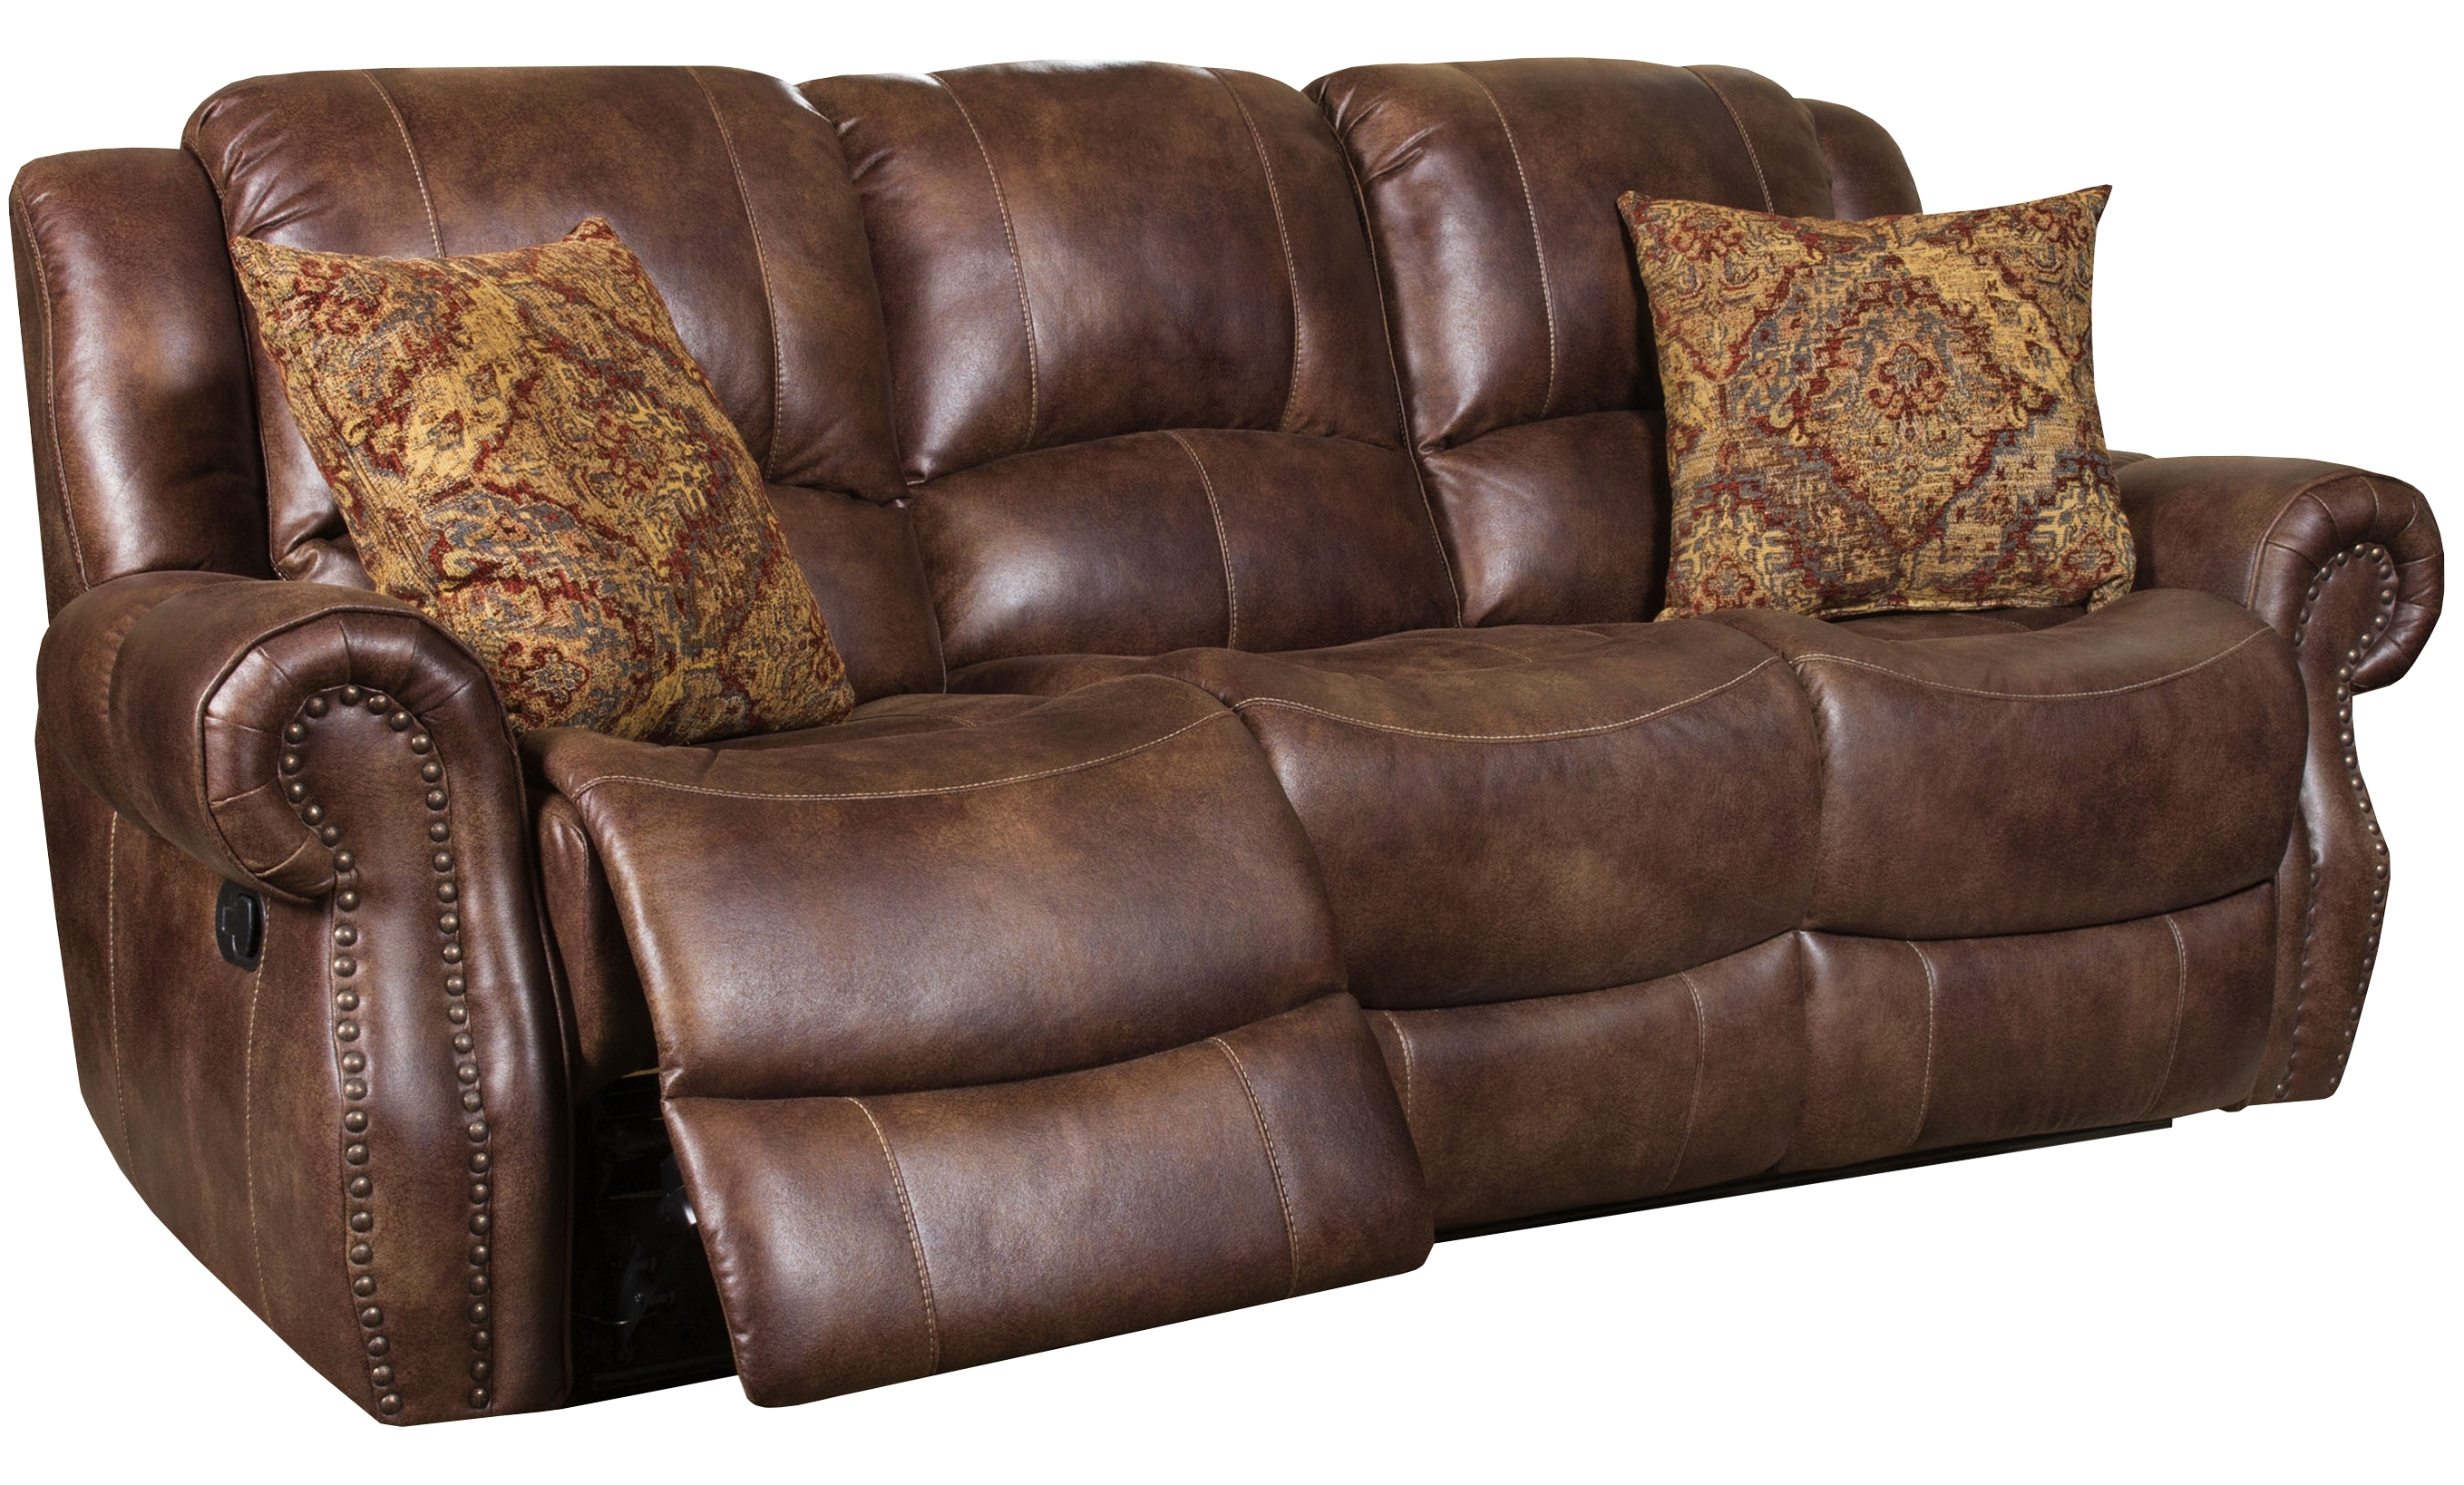 Waylon Collectioncorinthian For Waylon 3 Piece Power Reclining Sectionals (Image 20 of 25)